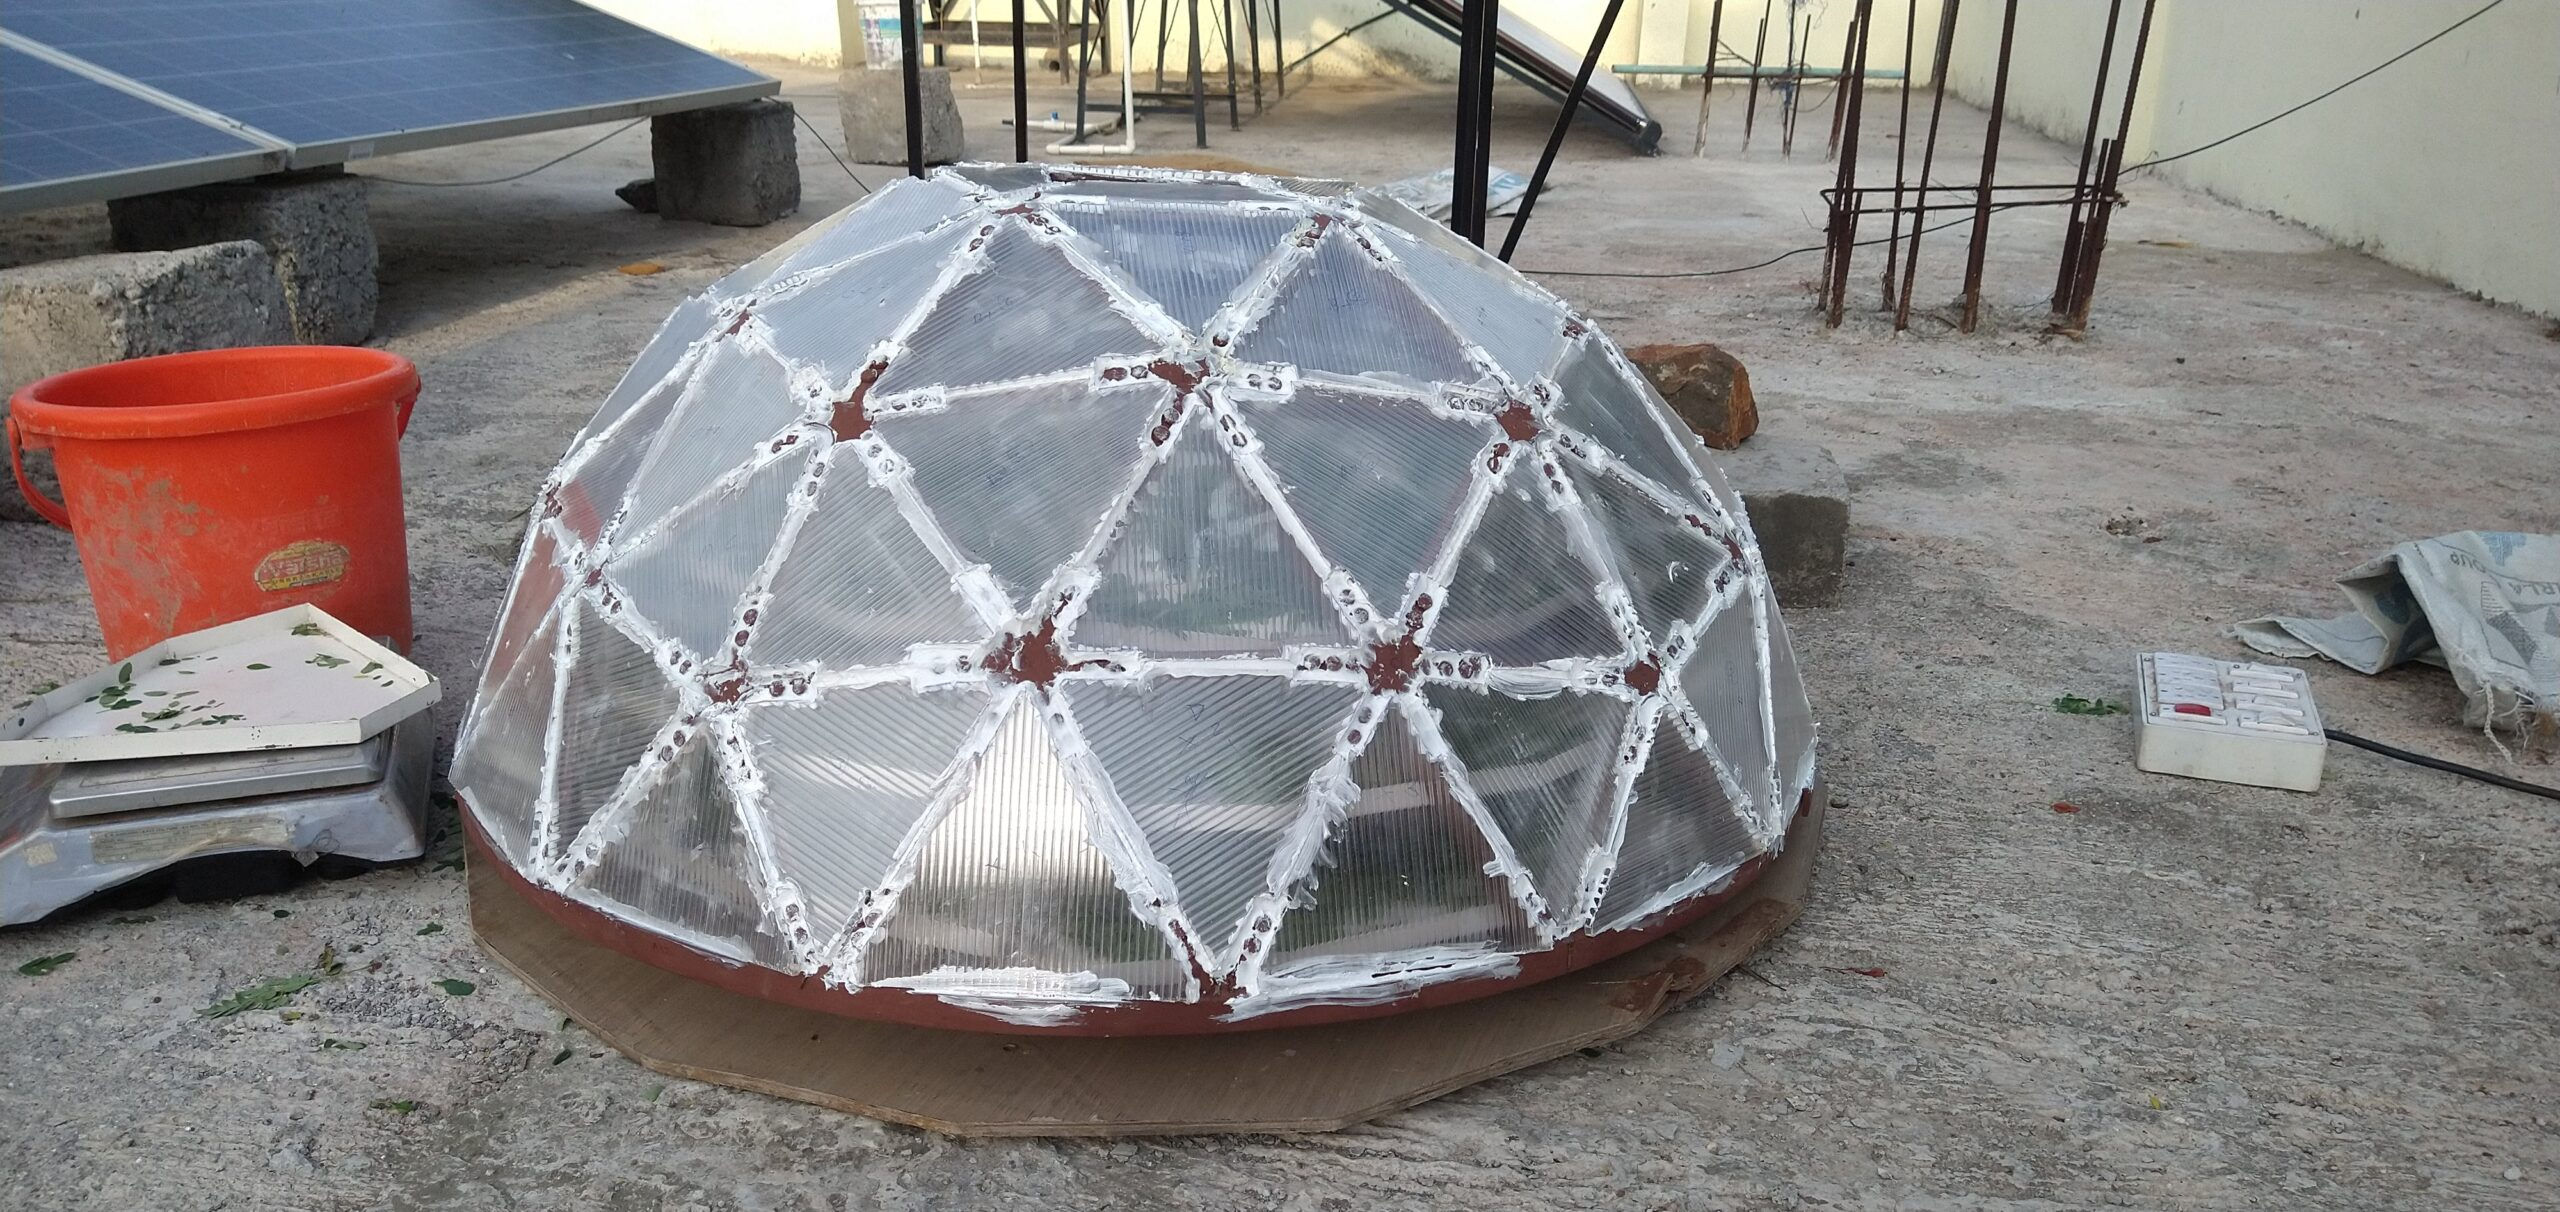 Fabrication of 3V Polycarbonate Dome